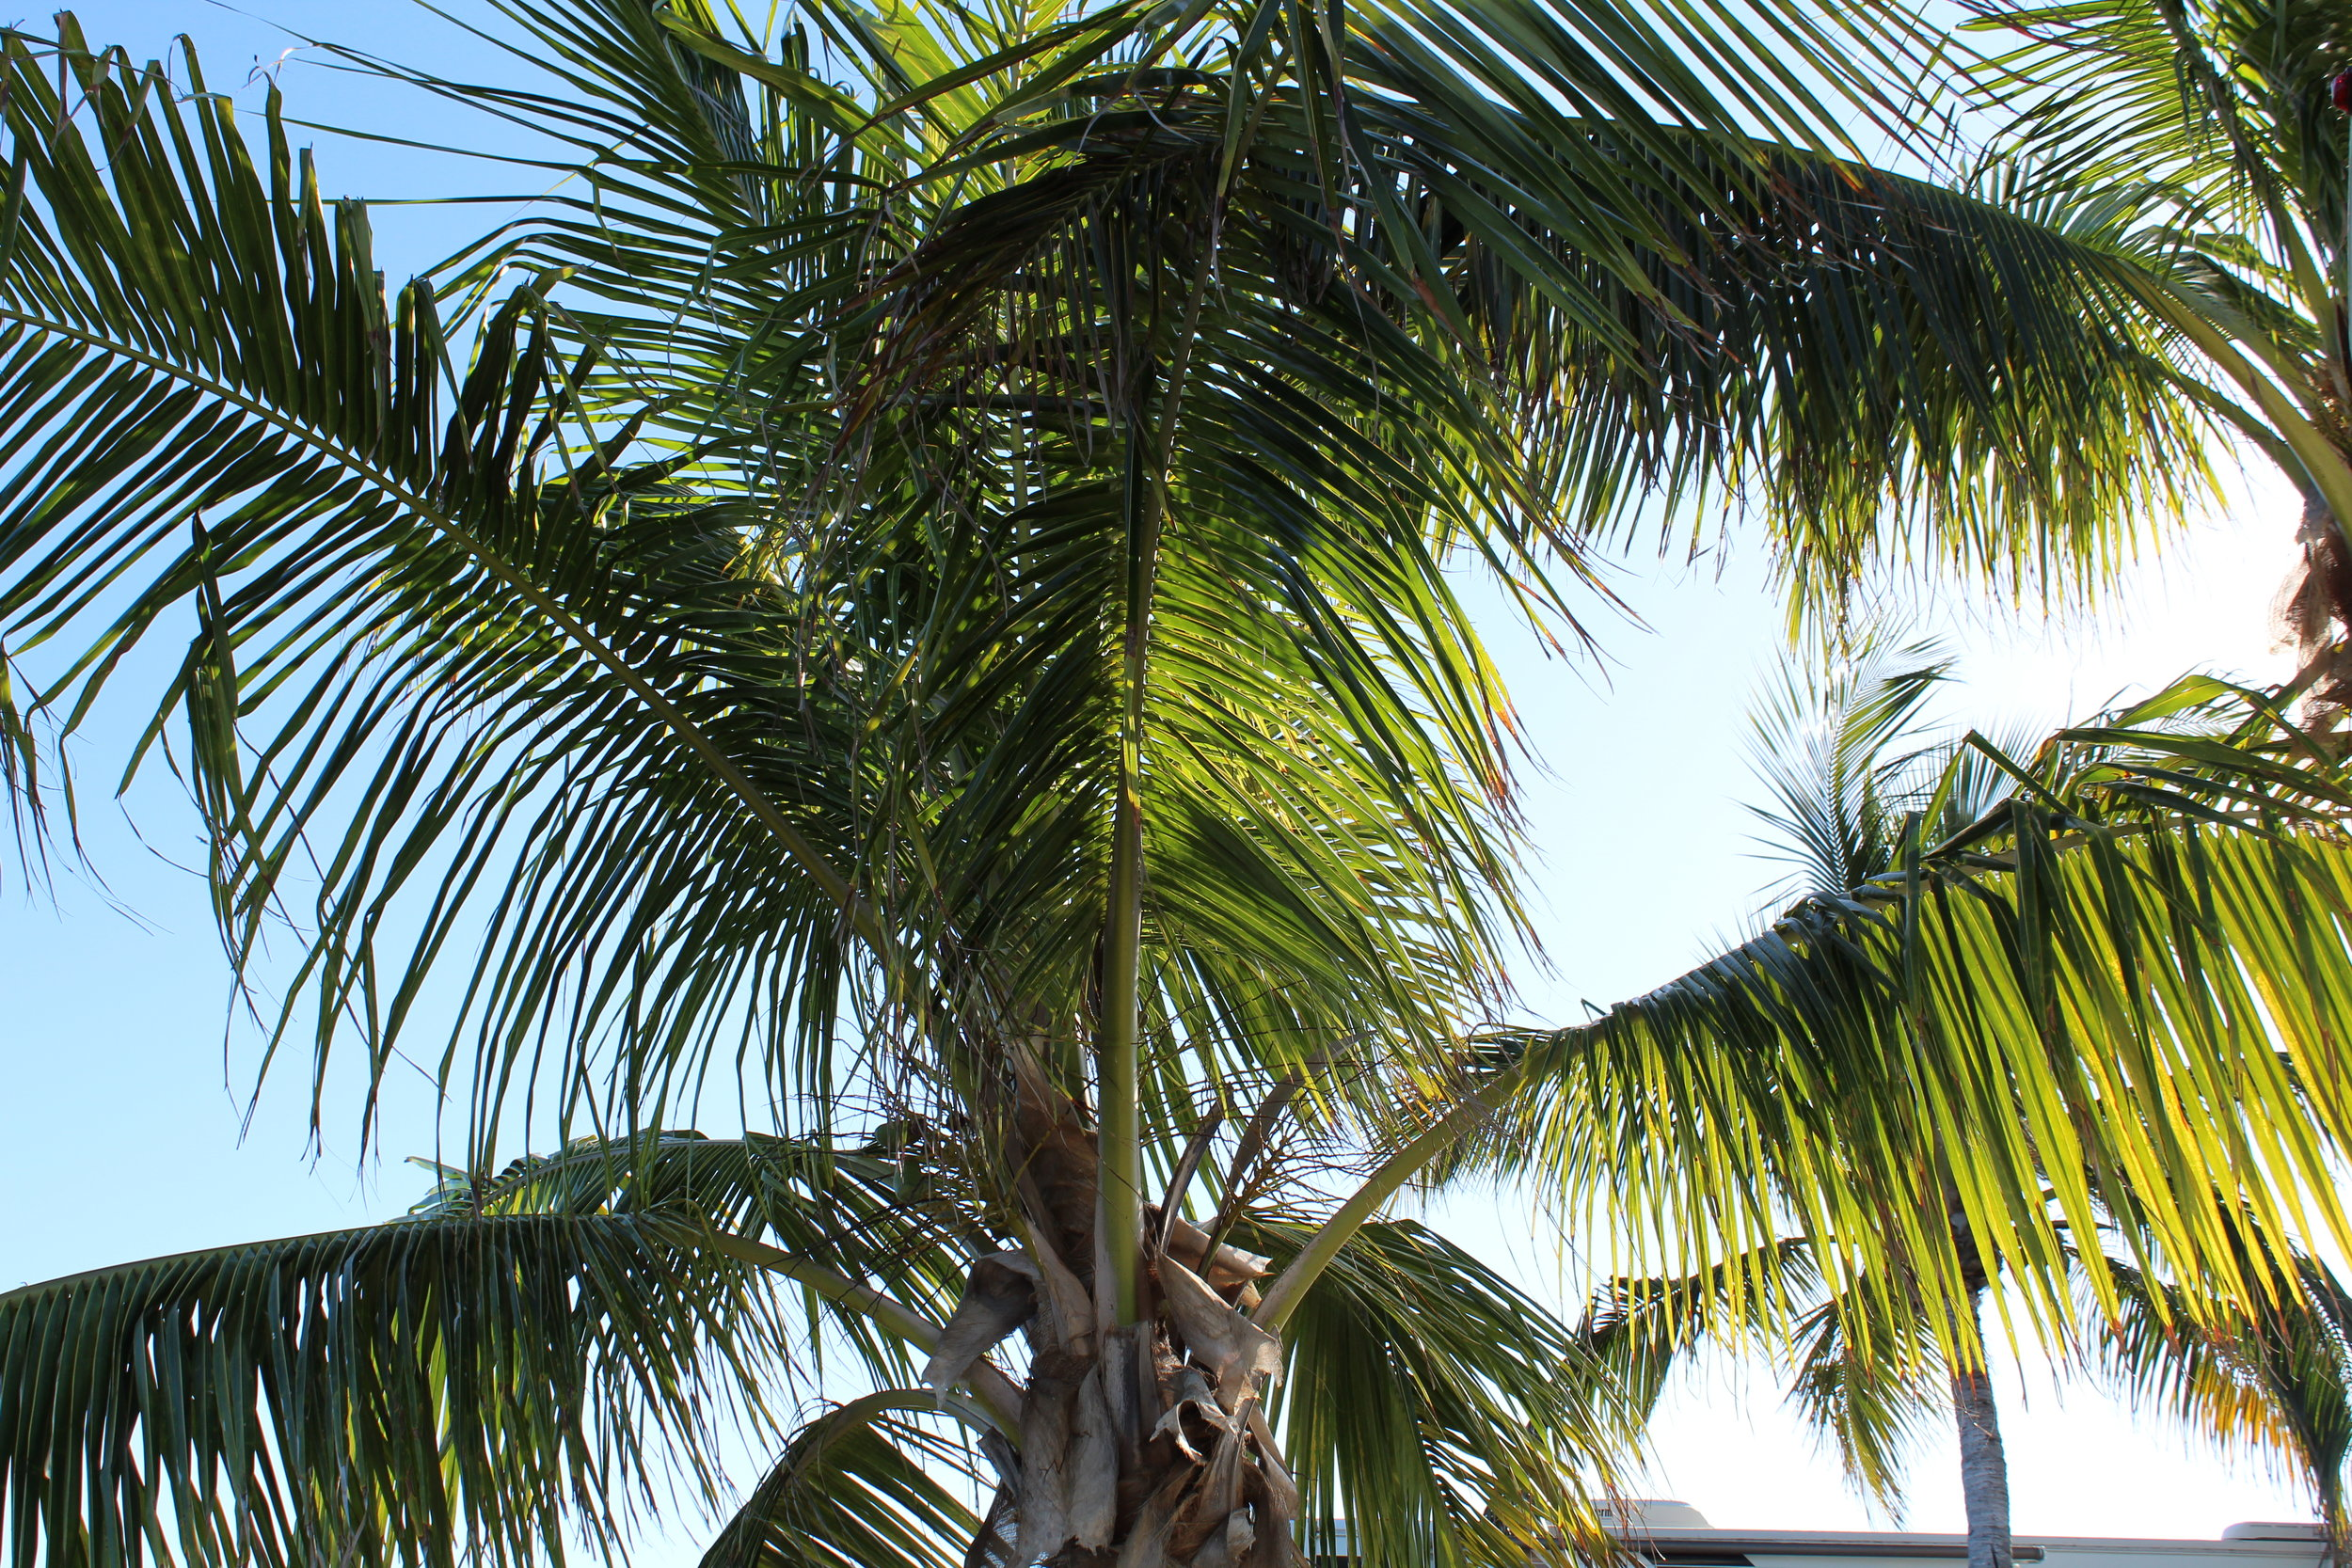 Ever-present palms are iconic in the Keys